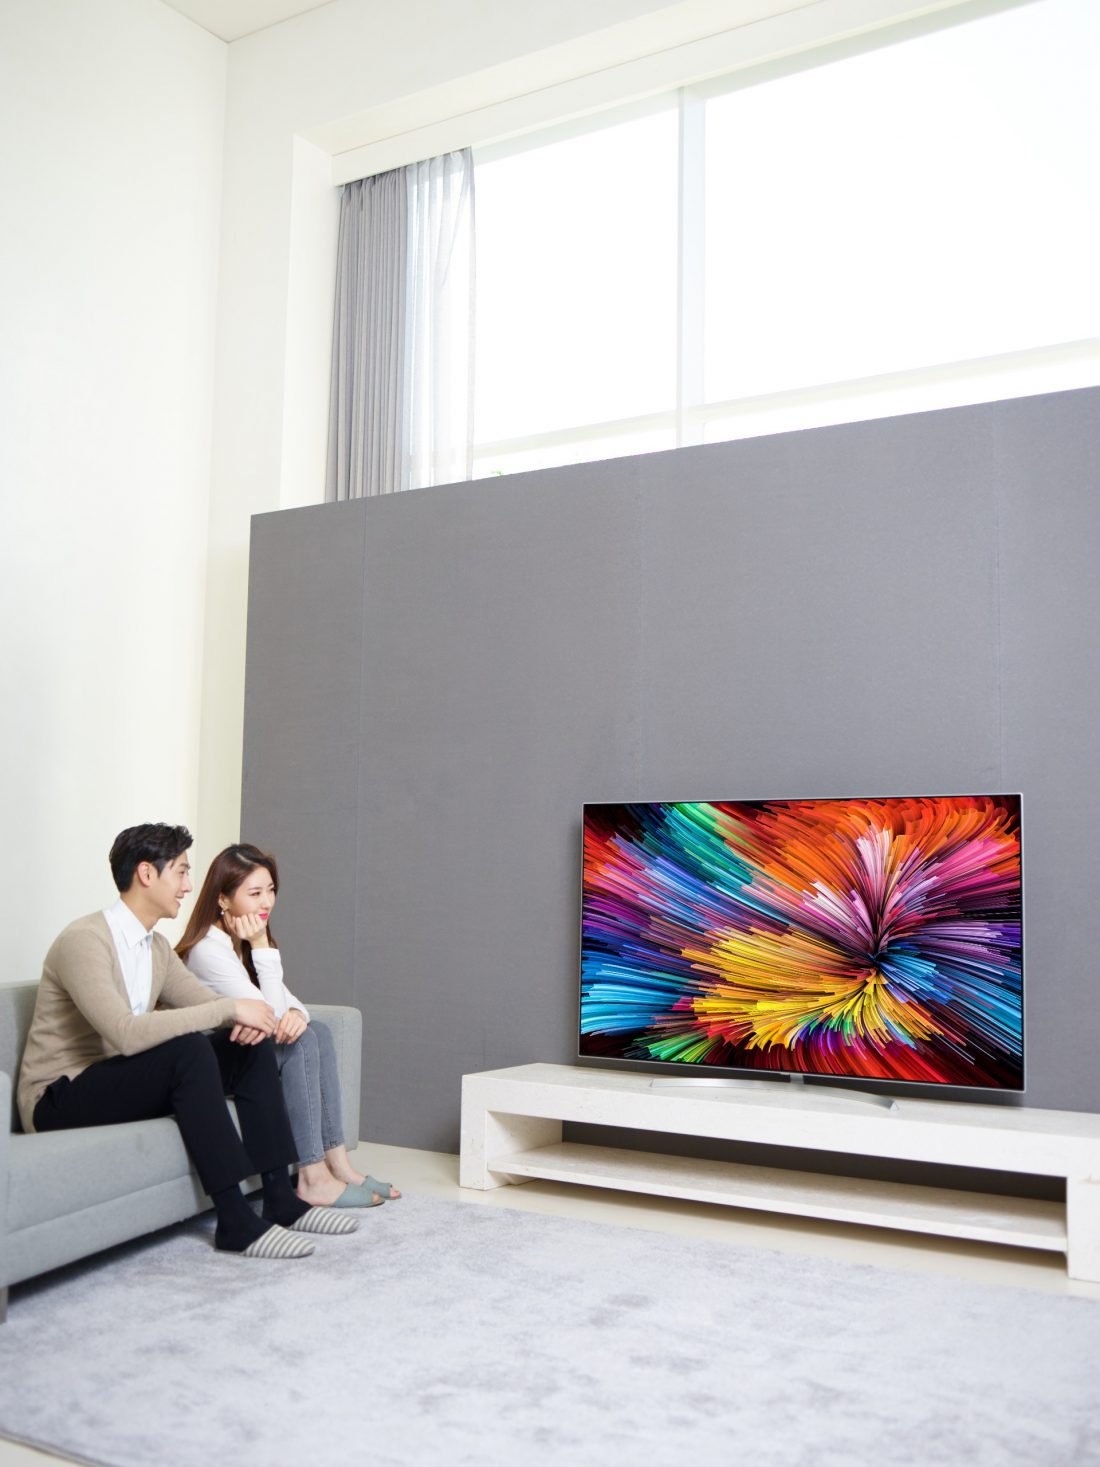 Another view of a couple sitting on a couch watching the LG SUPER UHD TV (model SJ95)